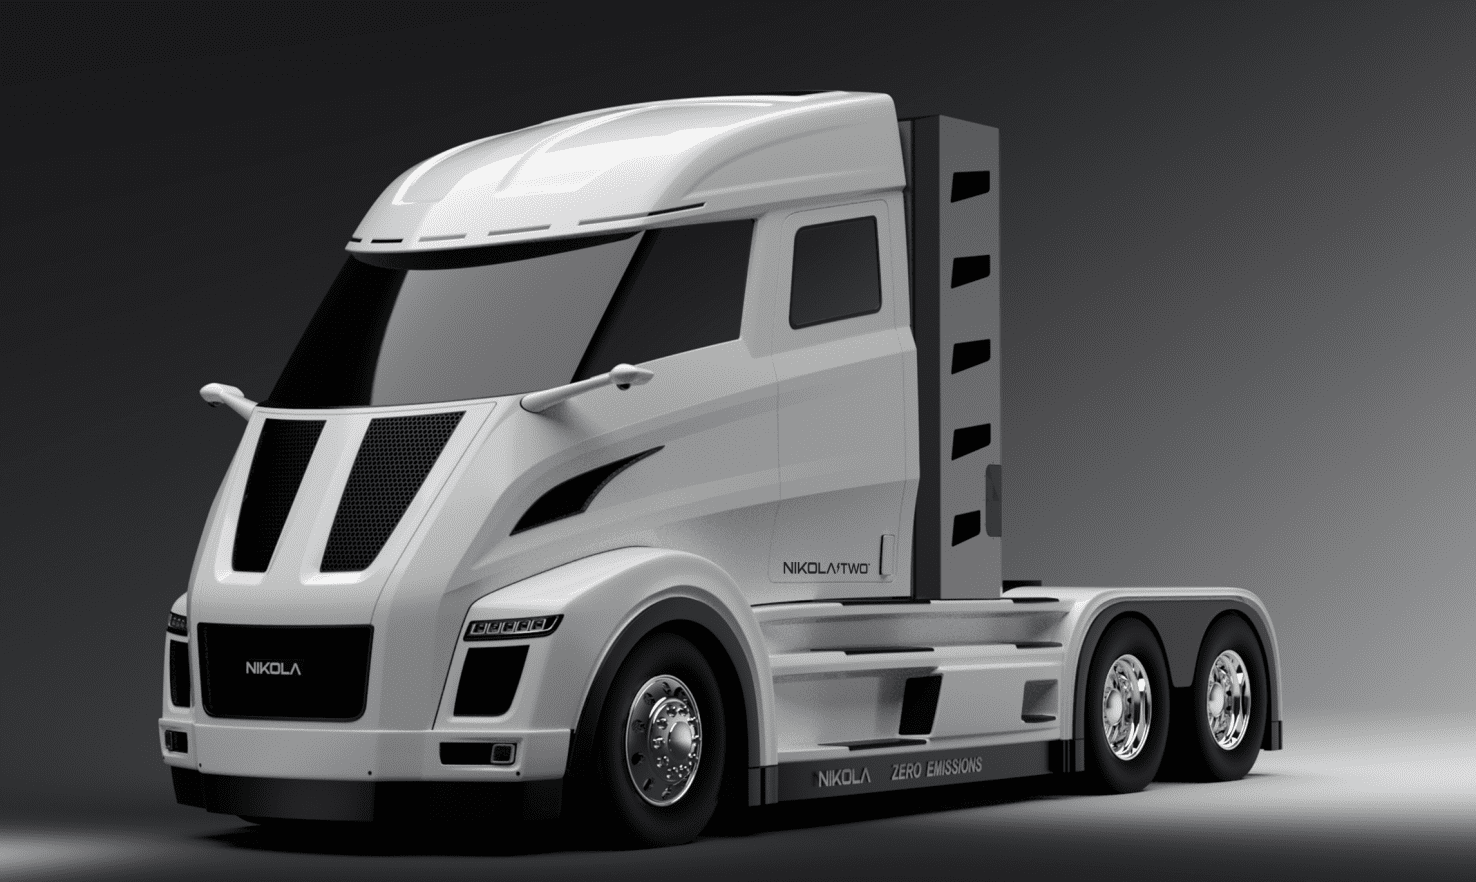 Nikola Two electric trucks